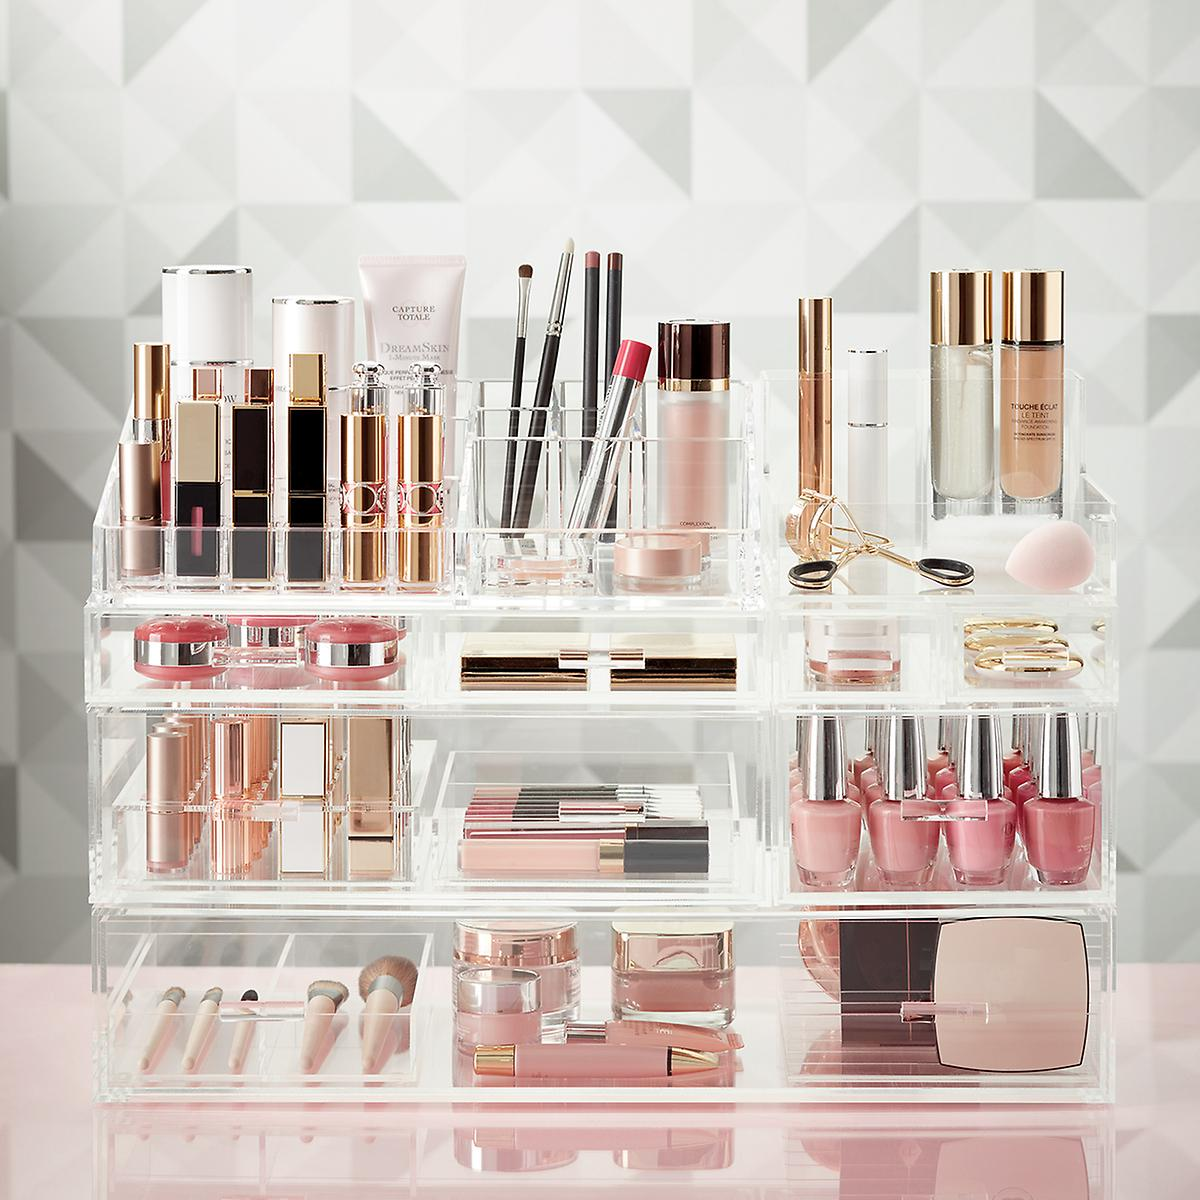 Luxe Acrylic Large Makeup U0026 Nail Polish Storage Kit Sale $160.29 (Retail  $202.89): This Solution Includes: (1) Luxe Long 2 Section Divided Insert ,  (1) Luxe ...